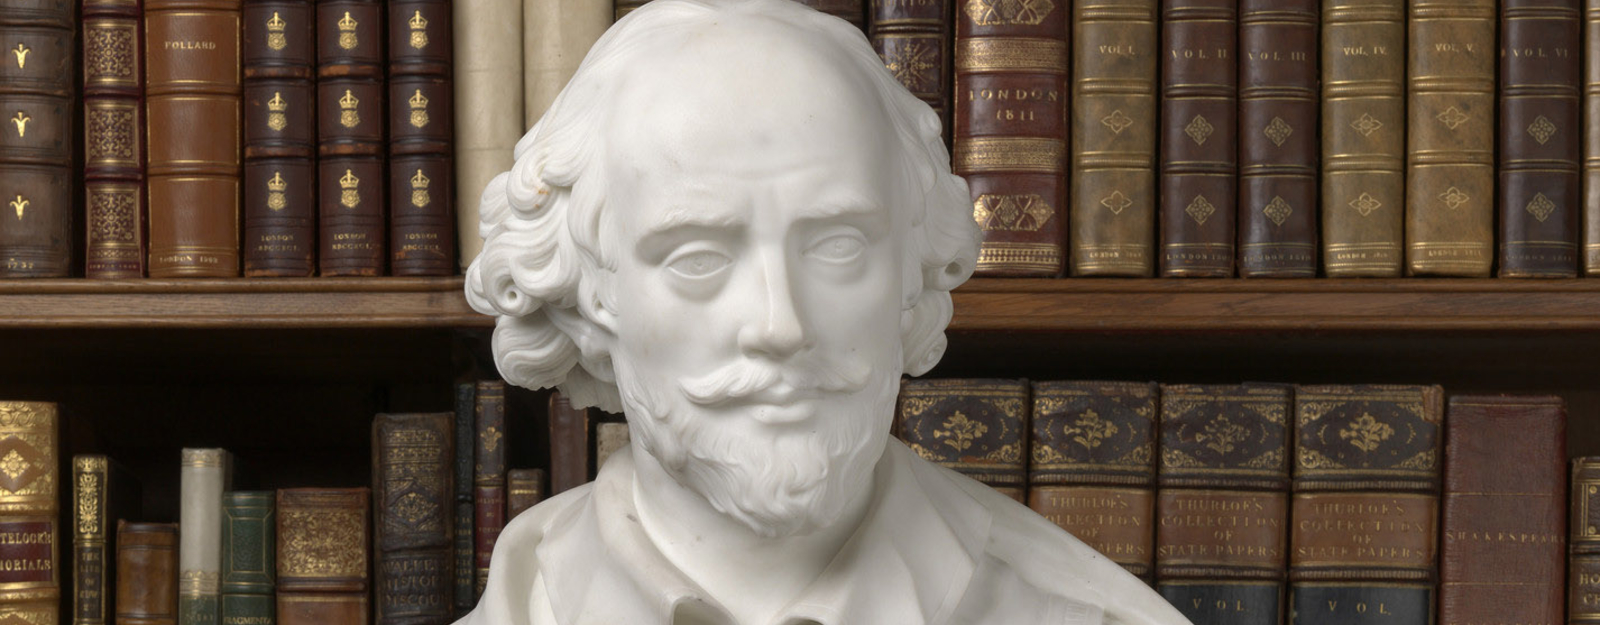 White bust of Shakespeare in Royal Library